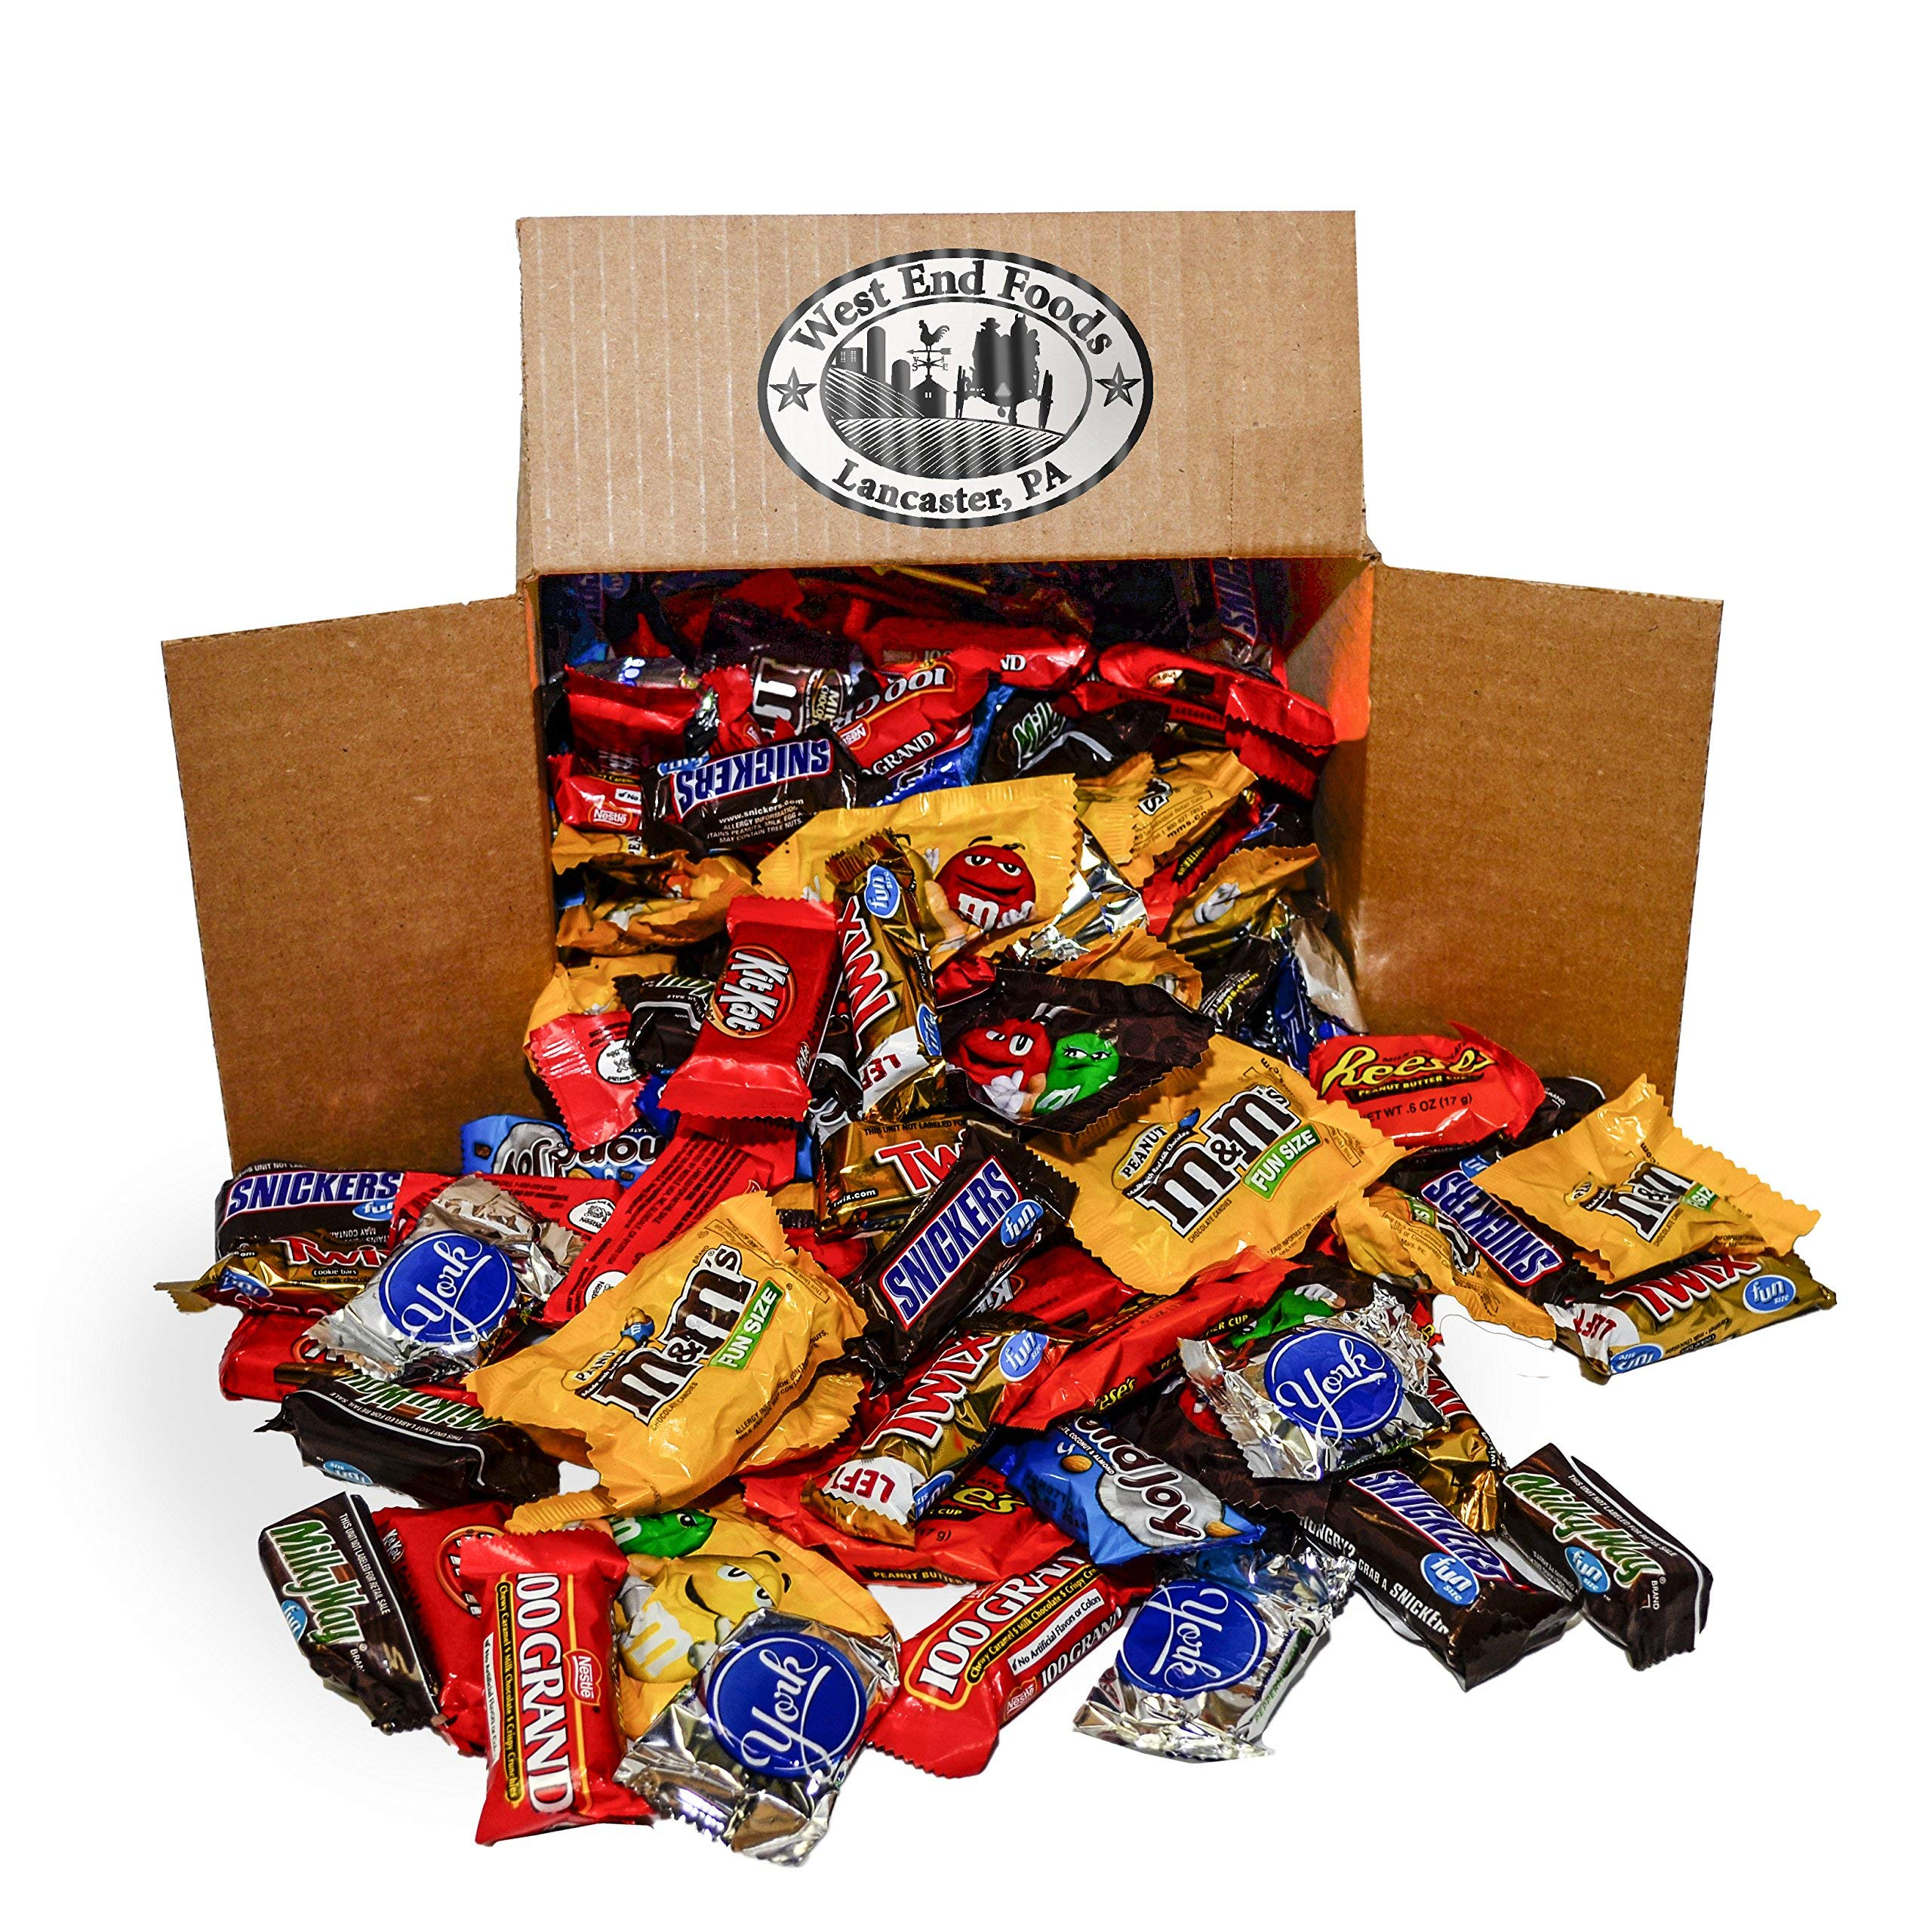 Chocolate Candy Assortment (5.6 lb Bag) Reese's, Milky Way Bars, M&Ms, Snickers, Peanut M&Ms, Twix, Kit Kat, Almond Joy, York, 100 Grand by WEST END FOODS LANCASTER, PA WSNE